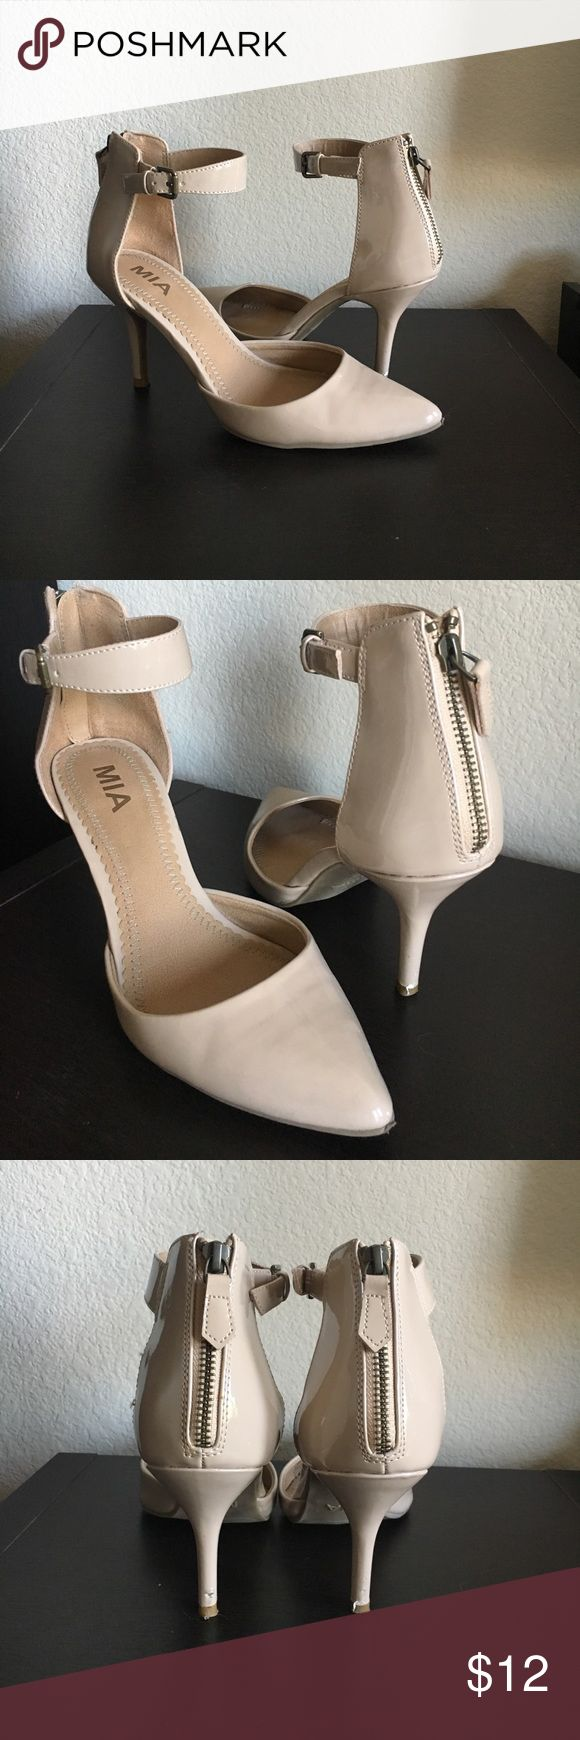 Nude Strappy High Heels Nude strappy heels with zip up closure - Mia™ brand size 7 in US Women's shoes Mia Shoes Heels